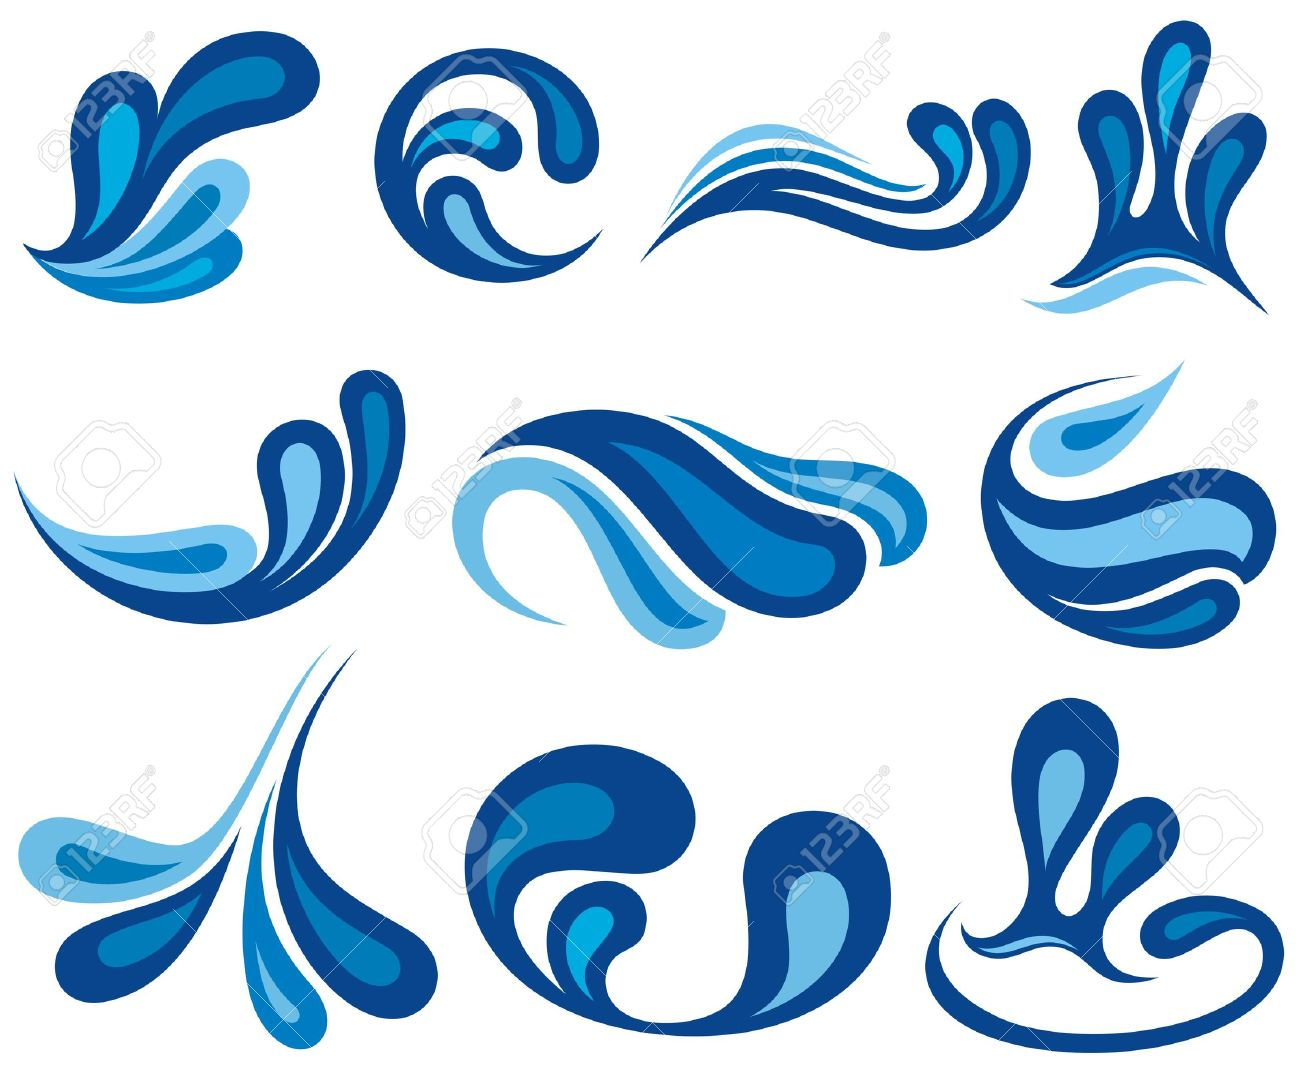 1300x1075 Splash Water Drops Royalty Free Cliparts, Vectors, And Stock